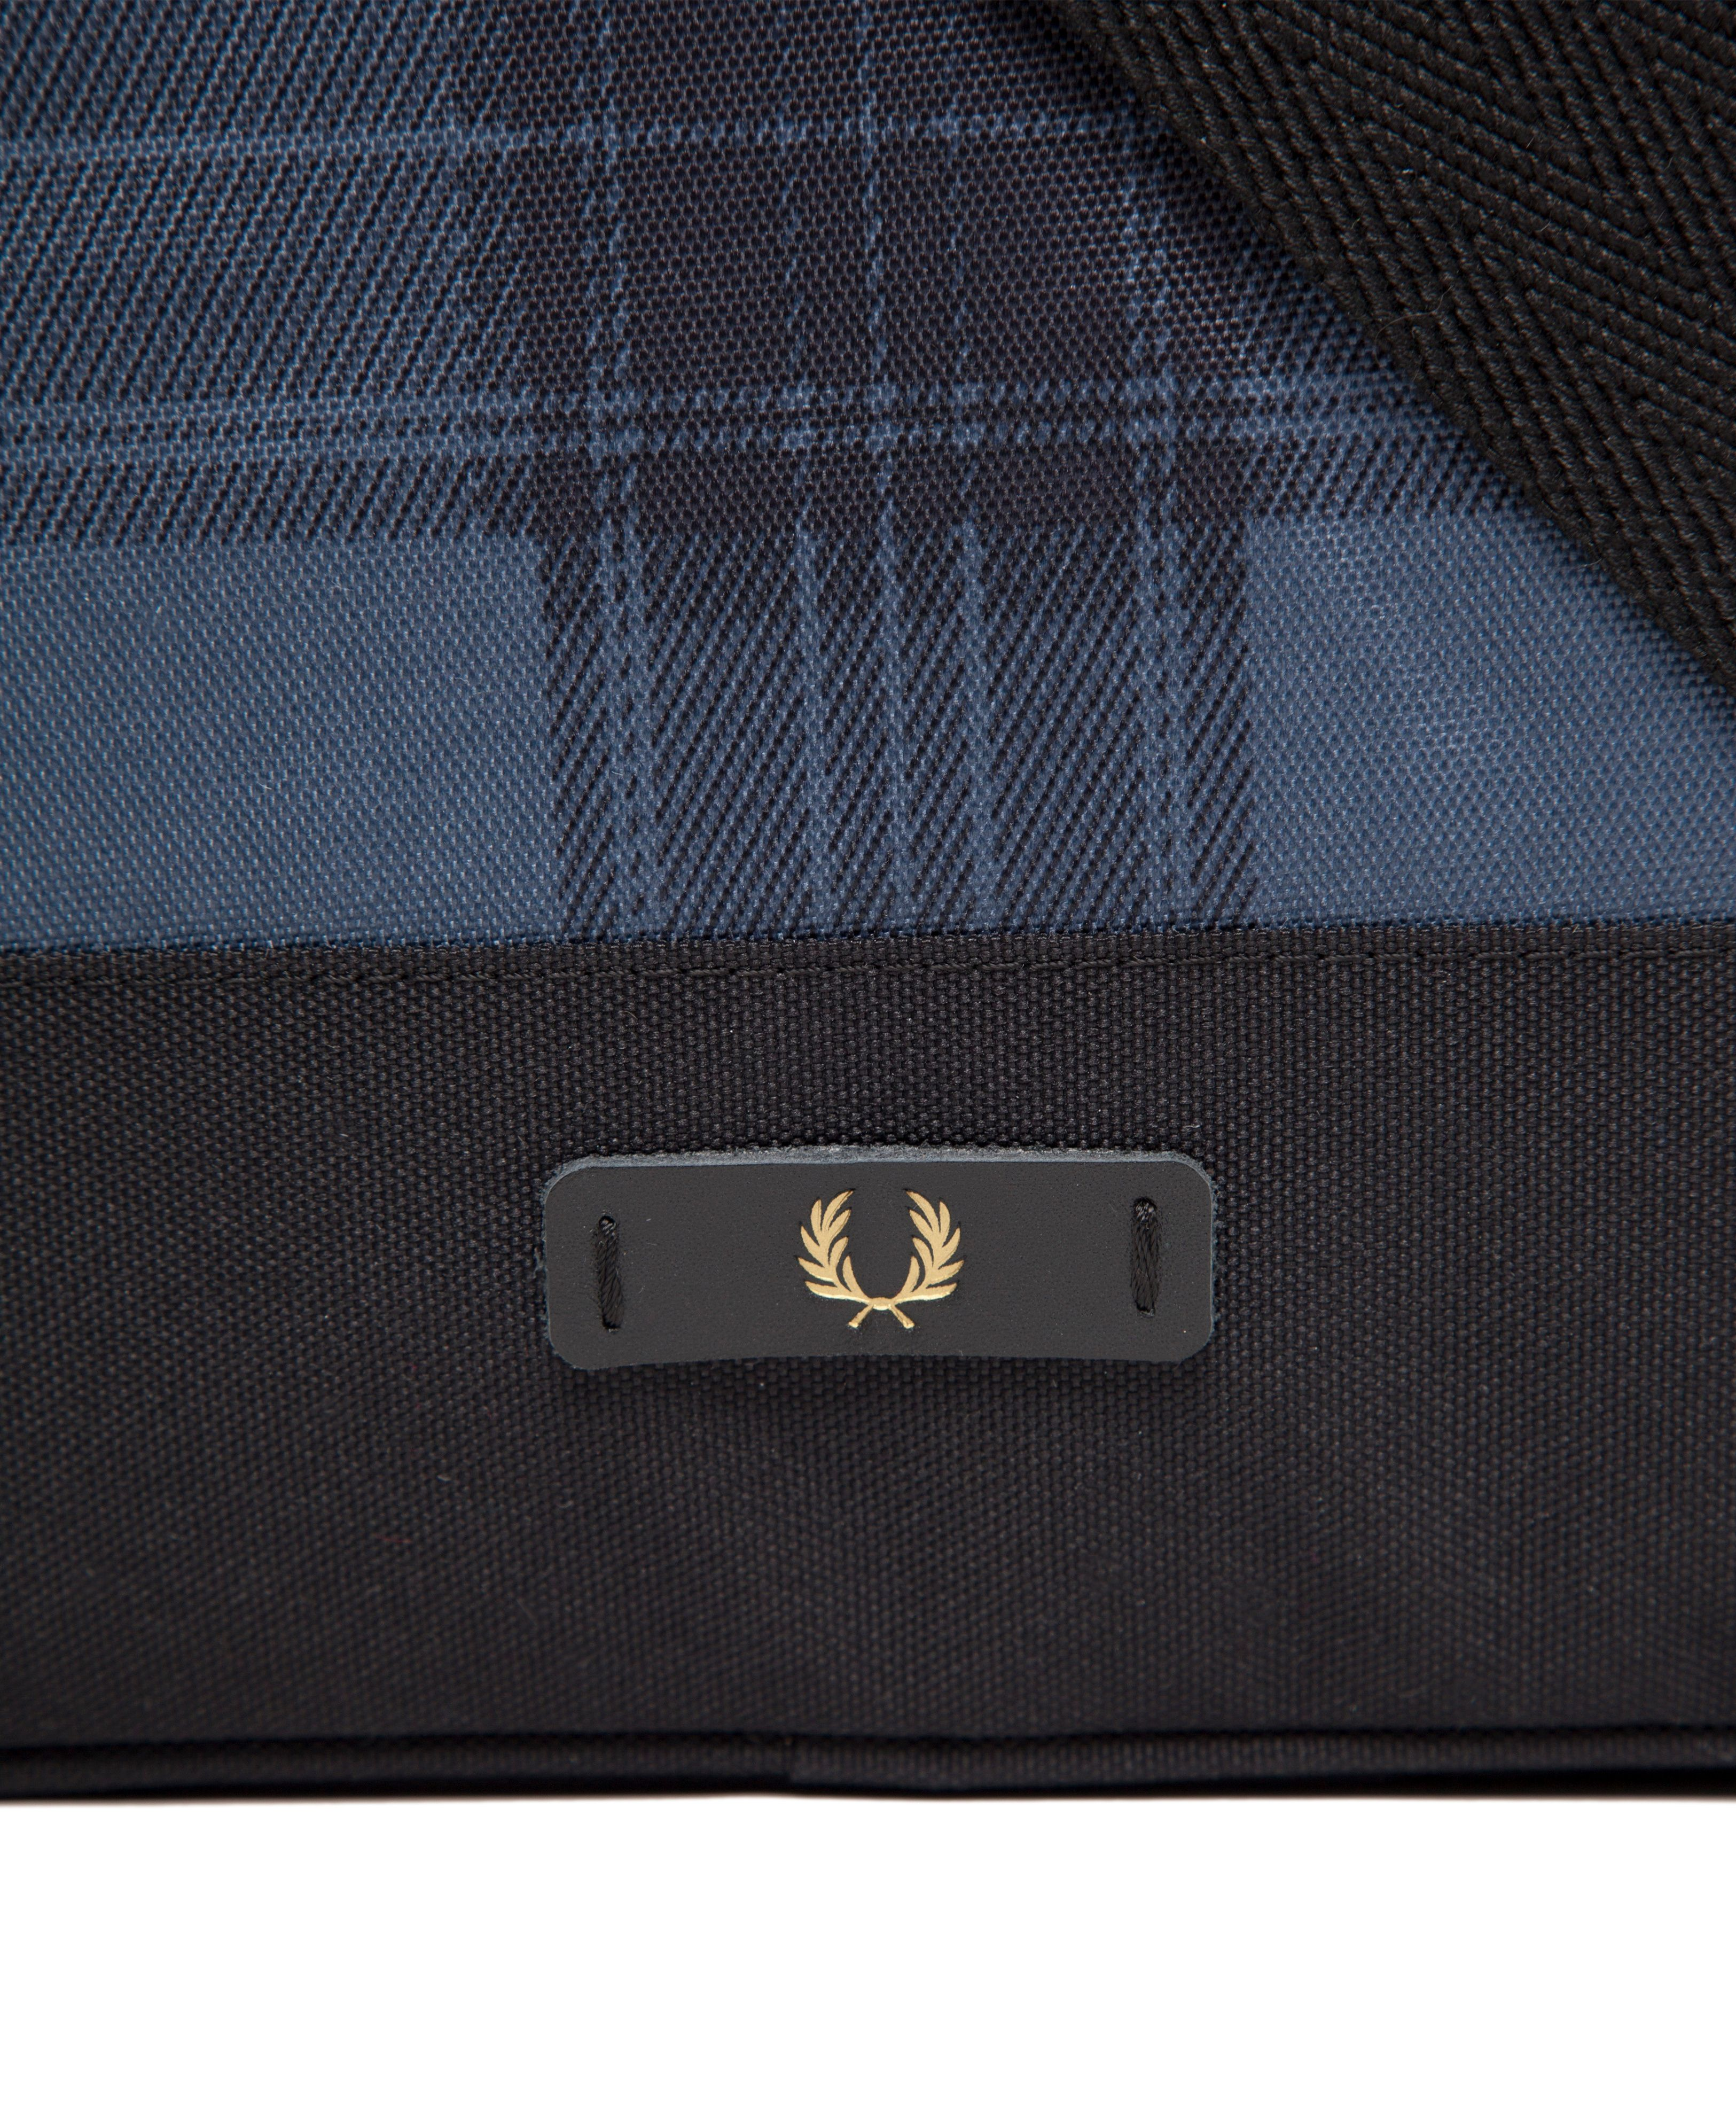 Fred Perry Canvas Shoulder Bag